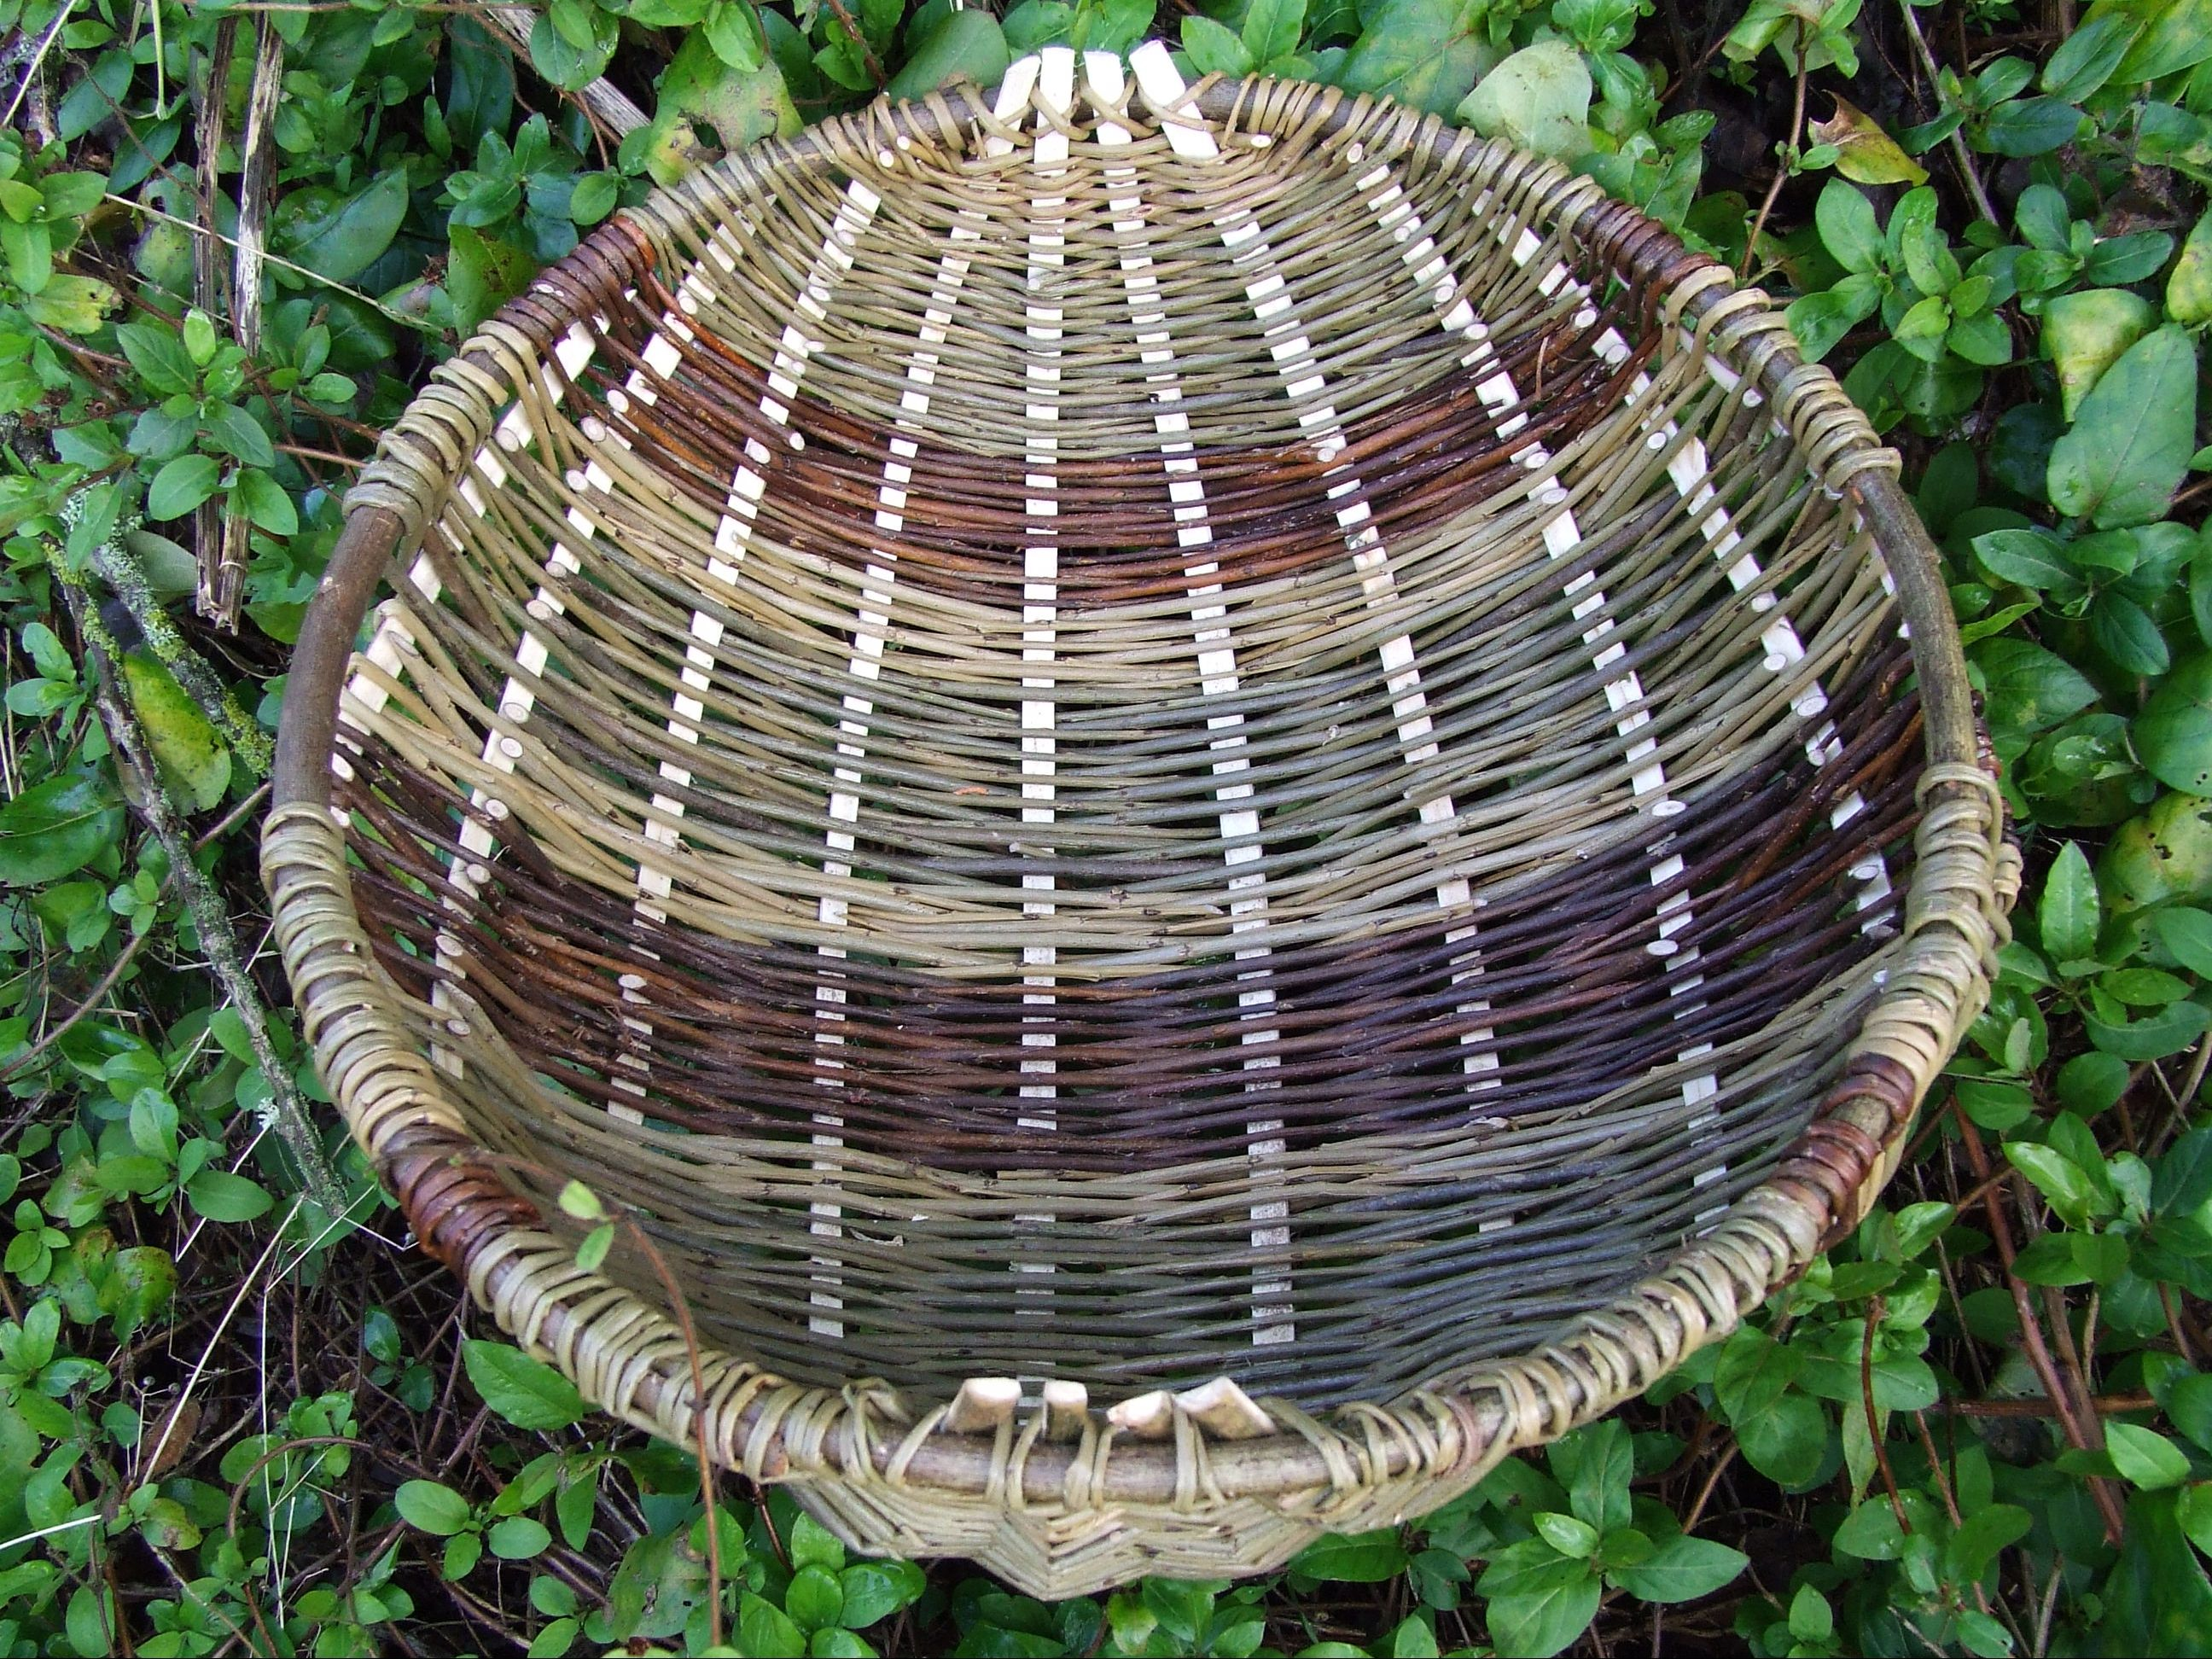 Simple Basket Weaving Willow : Willow weaving celtic frame baskets national museum wales